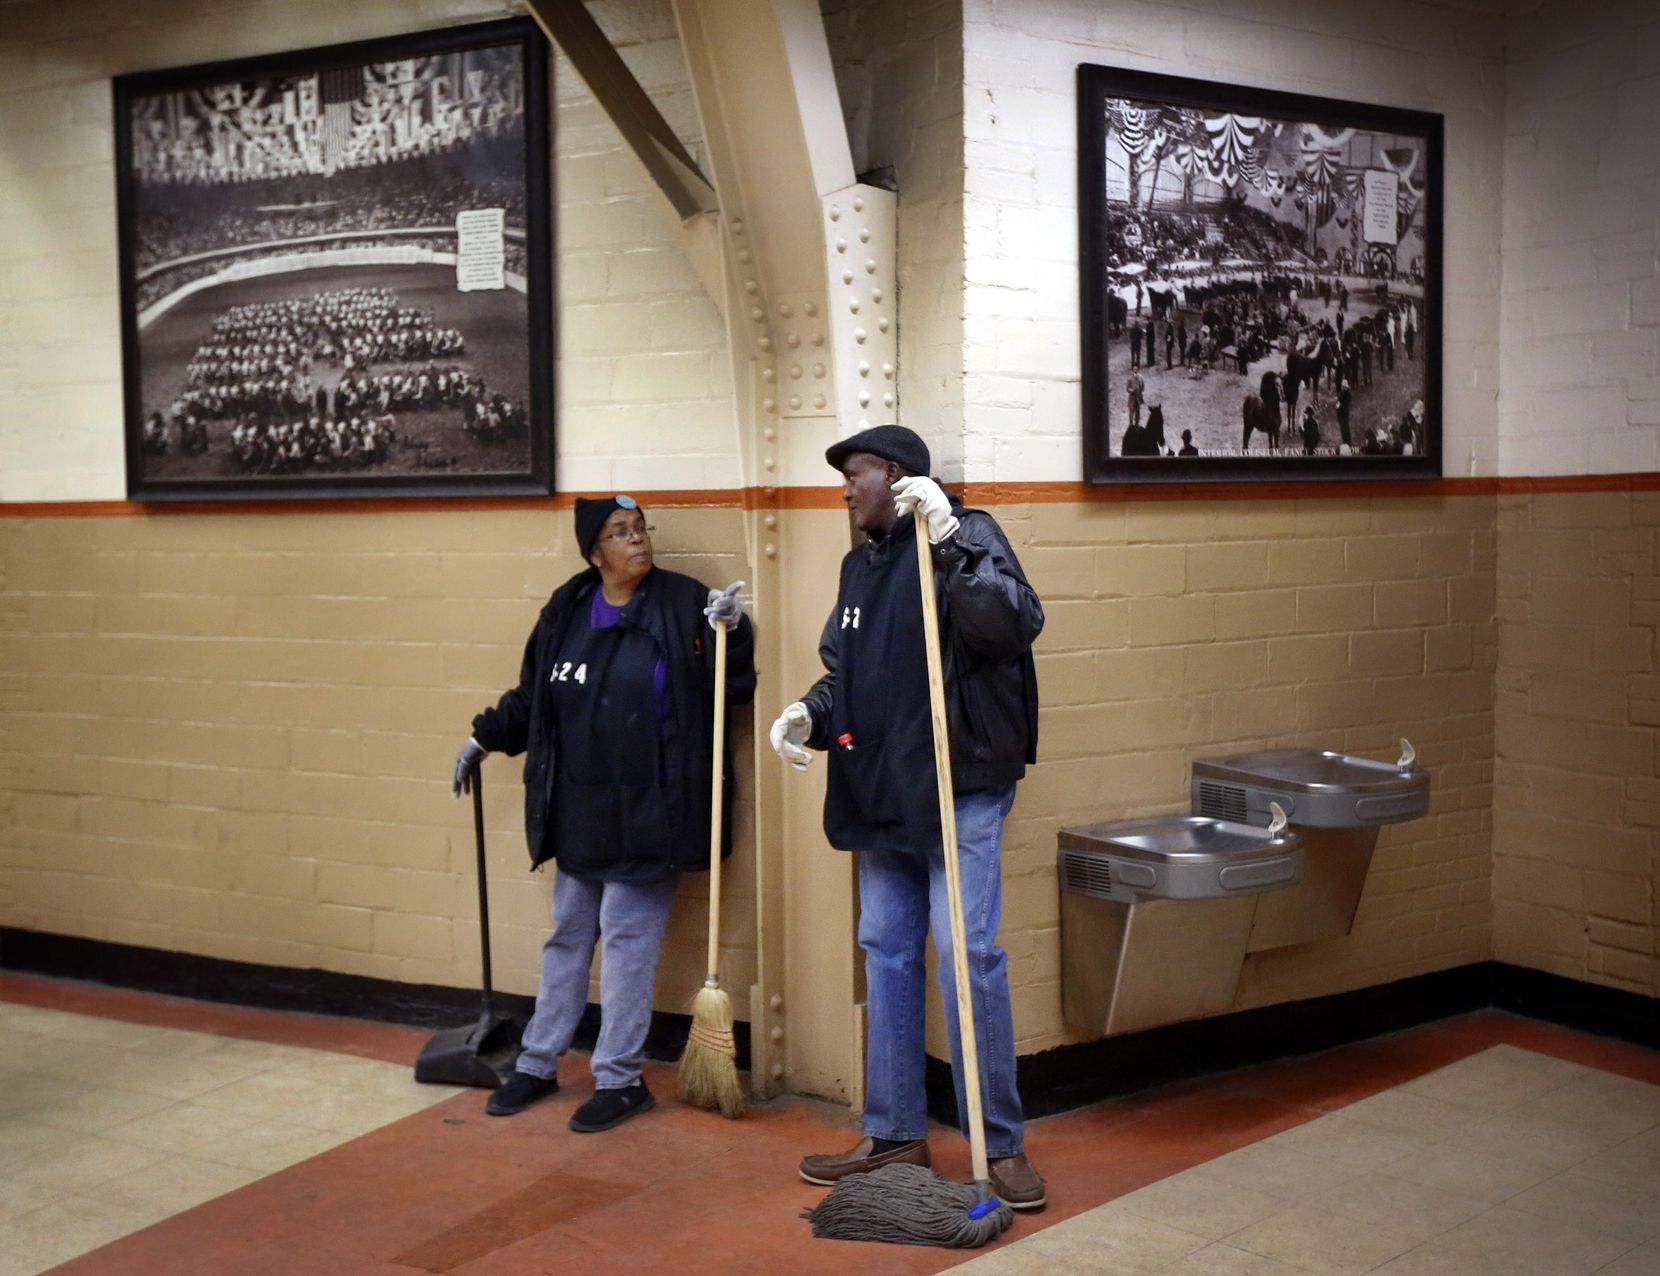 A pair of custodians visit along the historic, photo-lined walls of Will Rogers Memorial Coliseum, Thursday, January 31, 2019.